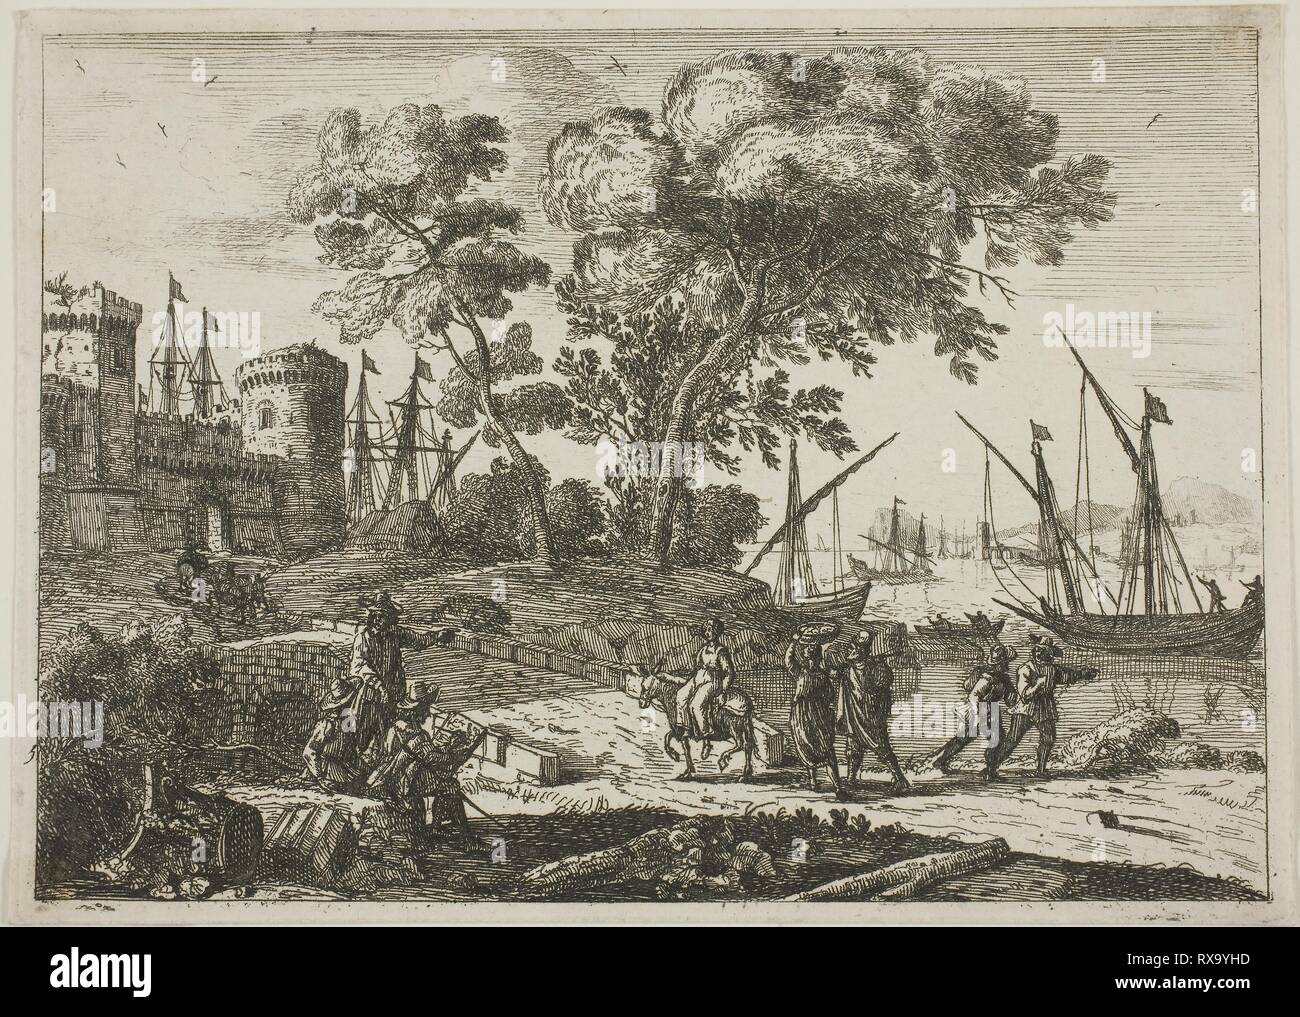 Coast Scene with an Artist Drawing. Claude Lorrain; French, 1600-1682. Date: 1638-1641. Dimensions: 126 × 176 mm (image); 132 × 185 mm (sheet, cut within platemark). Etching on ivory laid paper. Origin: France. Museum: The Chicago Art Institute. - Stock Image